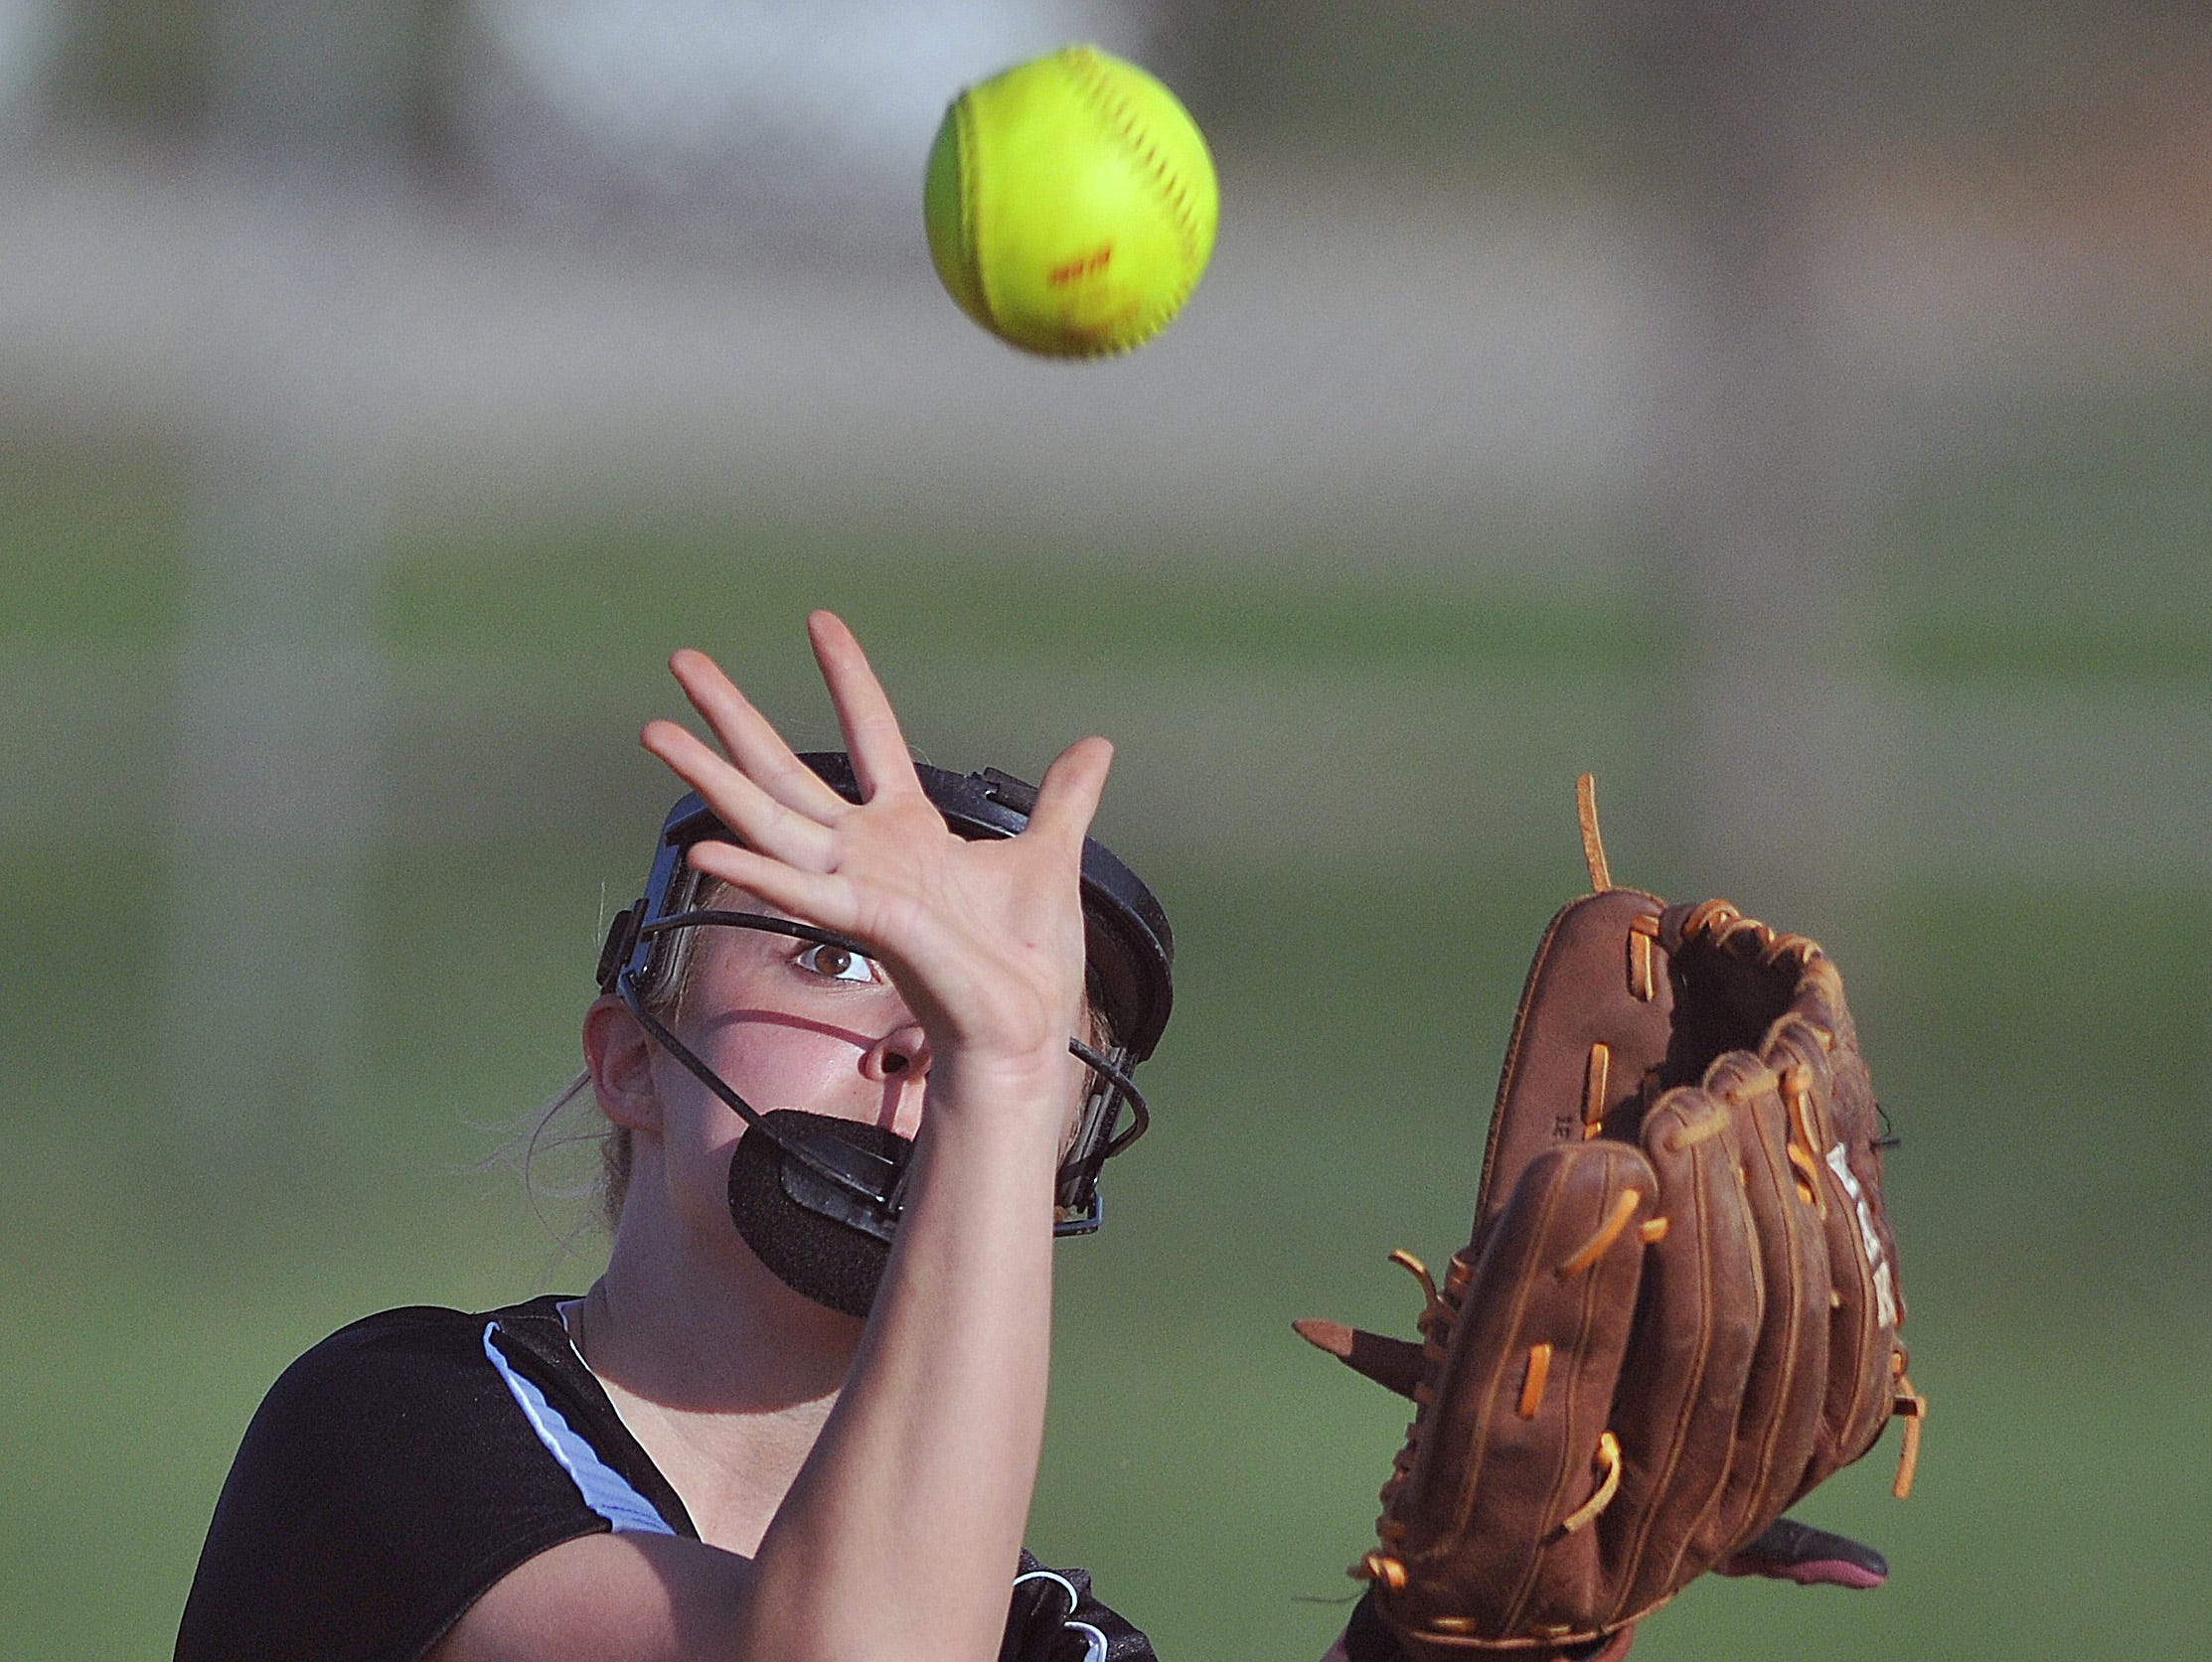 Lexington's Kailyn Conn makes a catch against Mount St. Dominic during the Wendy's Spring Classic at Brookside Park West Field No. 2 Friday.